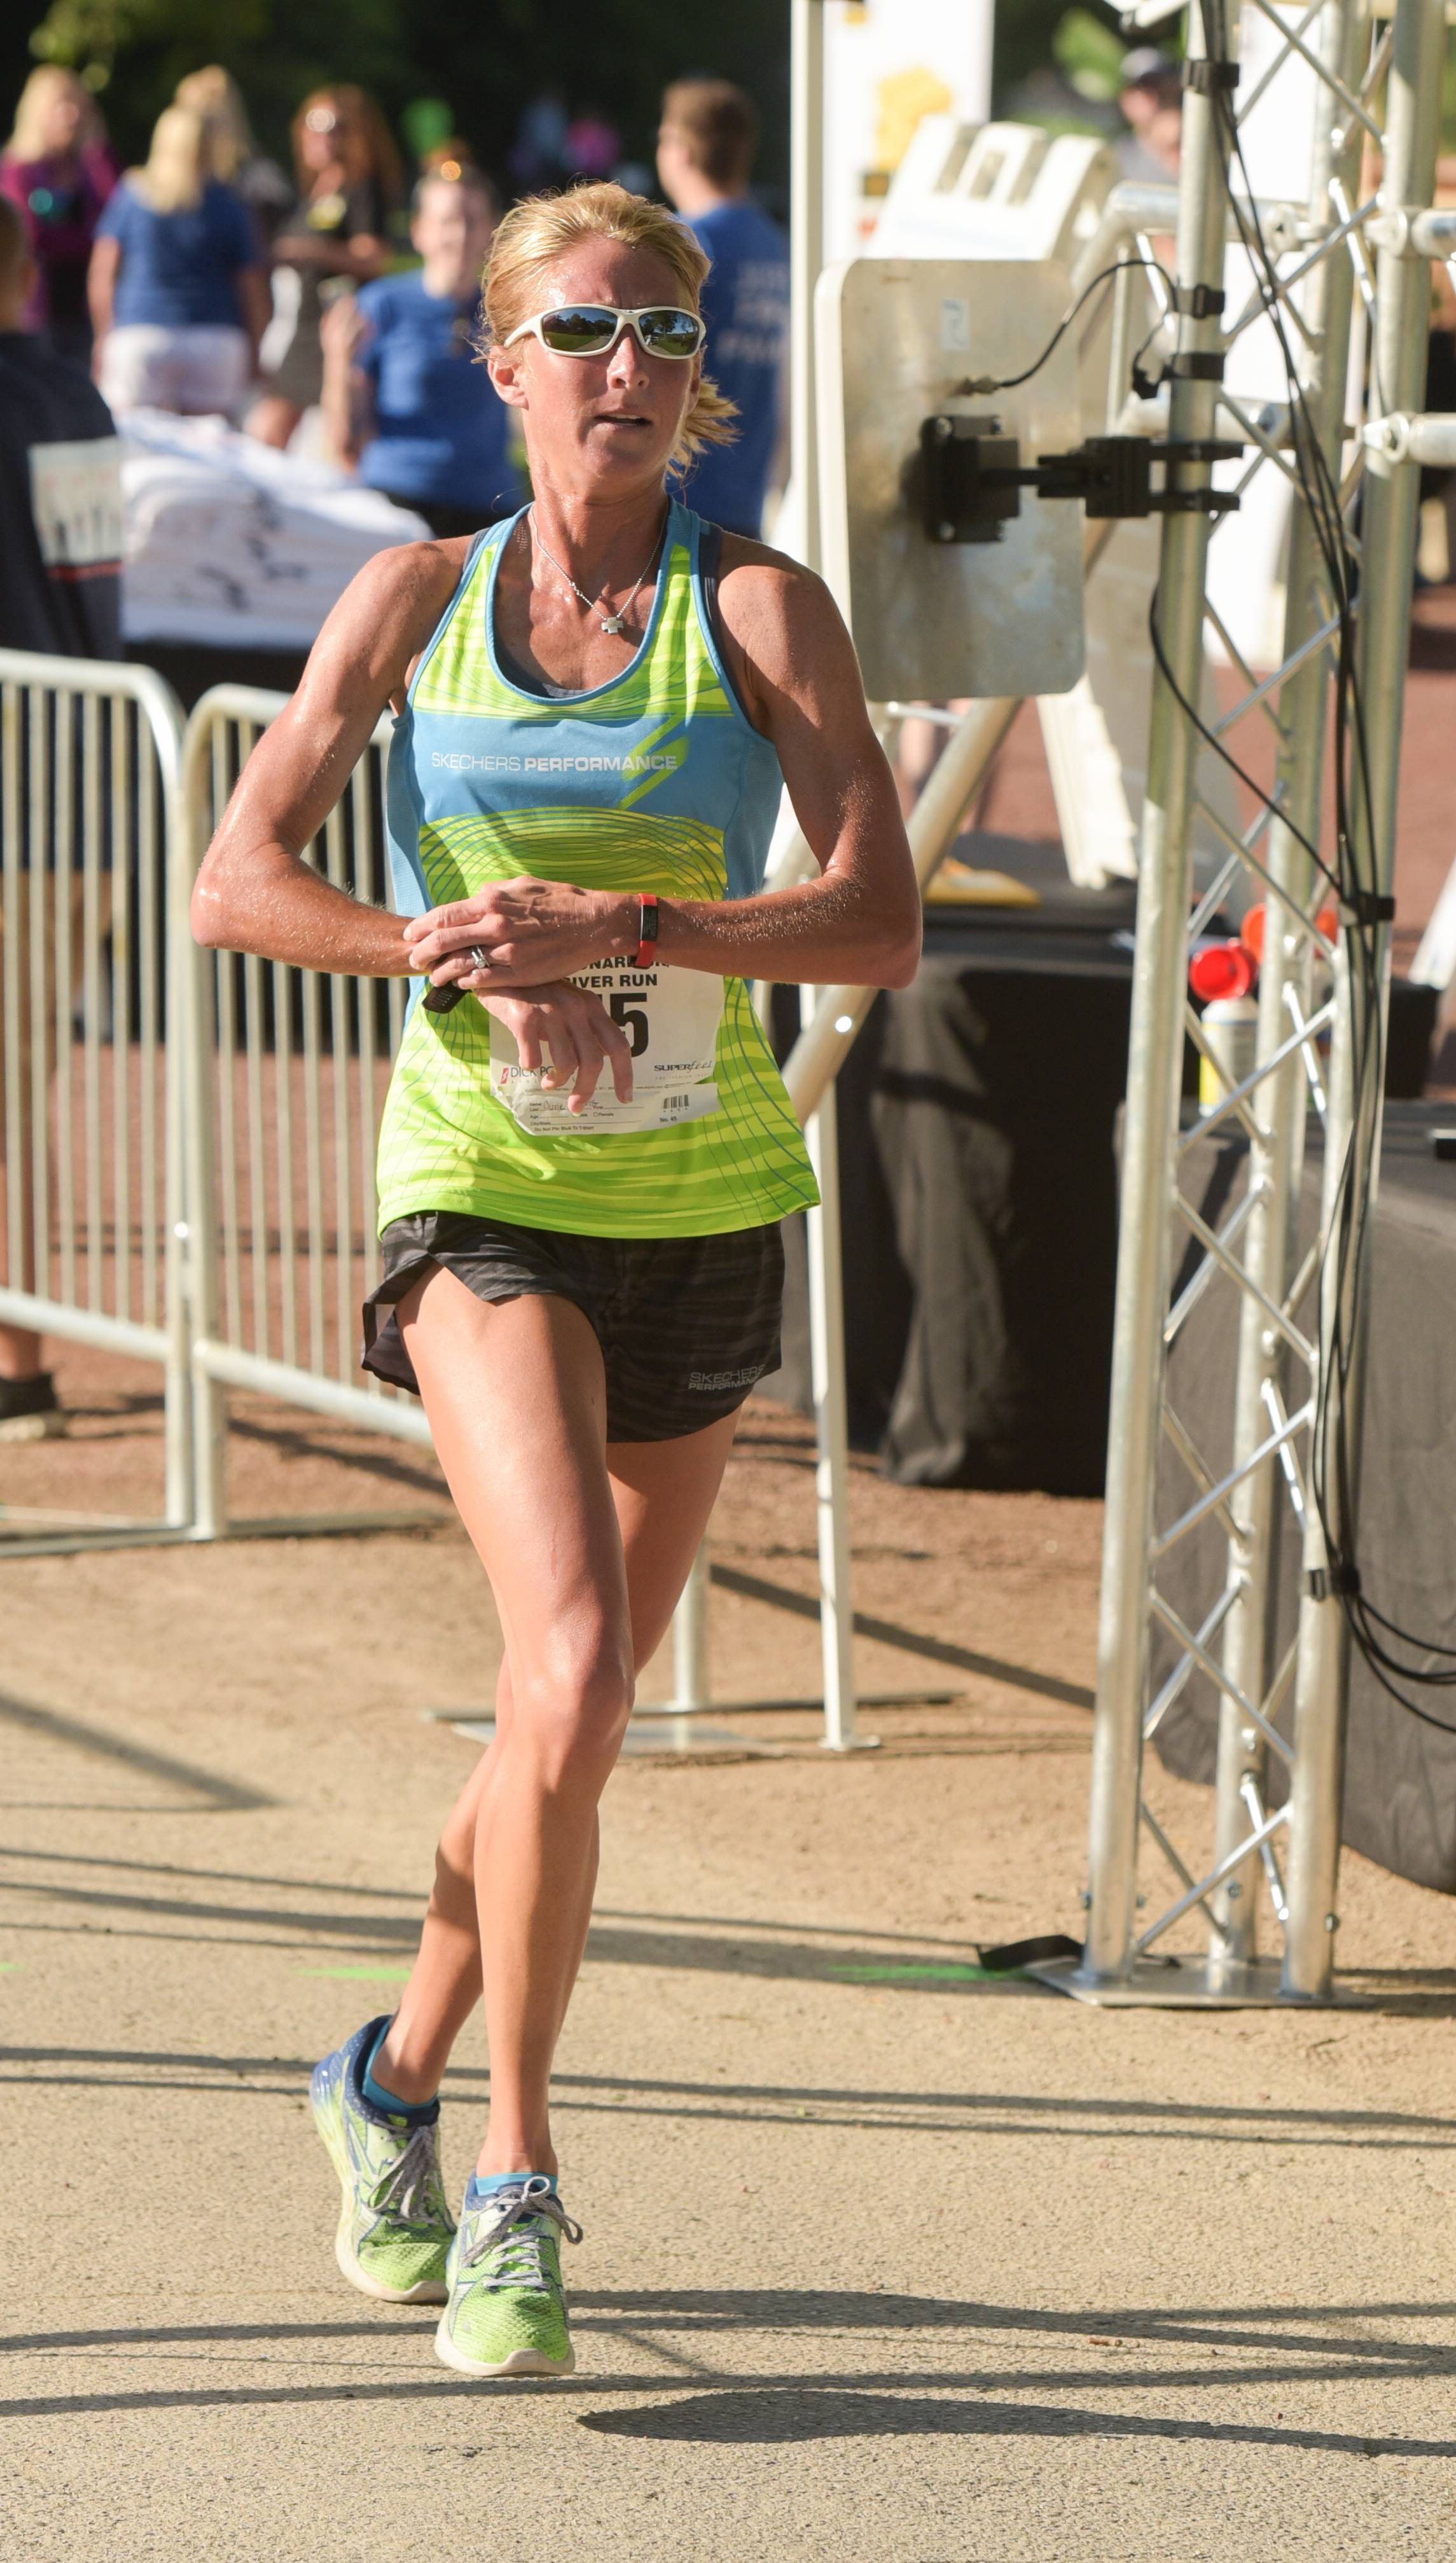 Carrie Birth-Davis of Scottsdale, Arizona, who grew up in St. Charles, was the first woman to cross the finish line in the Bob Leonard 5K River Run.